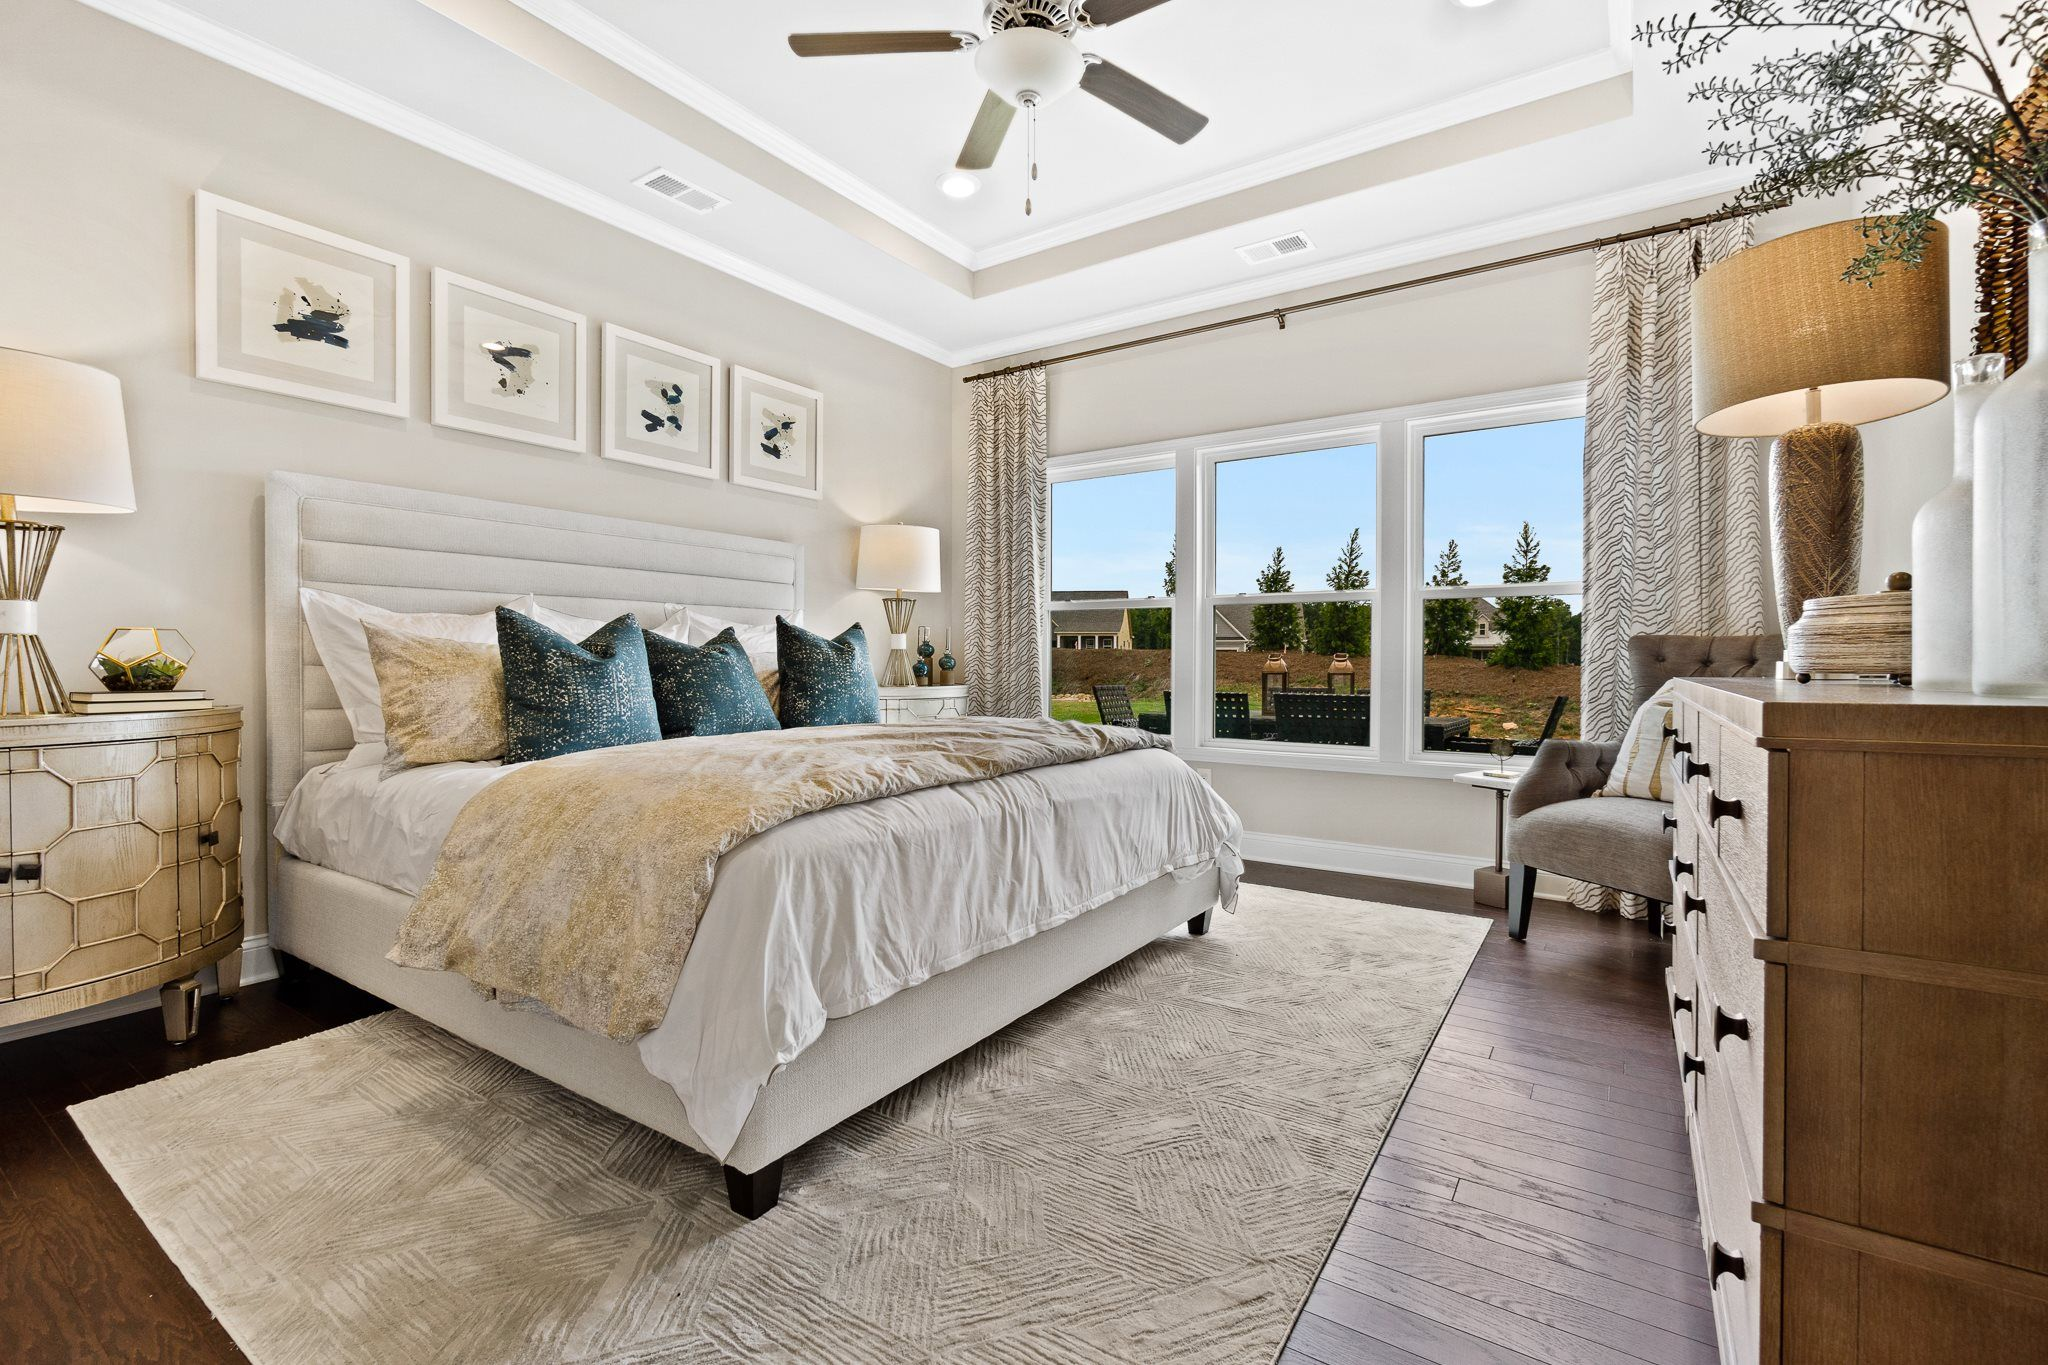 Bedroom featured in the Briarwood By Lennar in Atlanta, GA